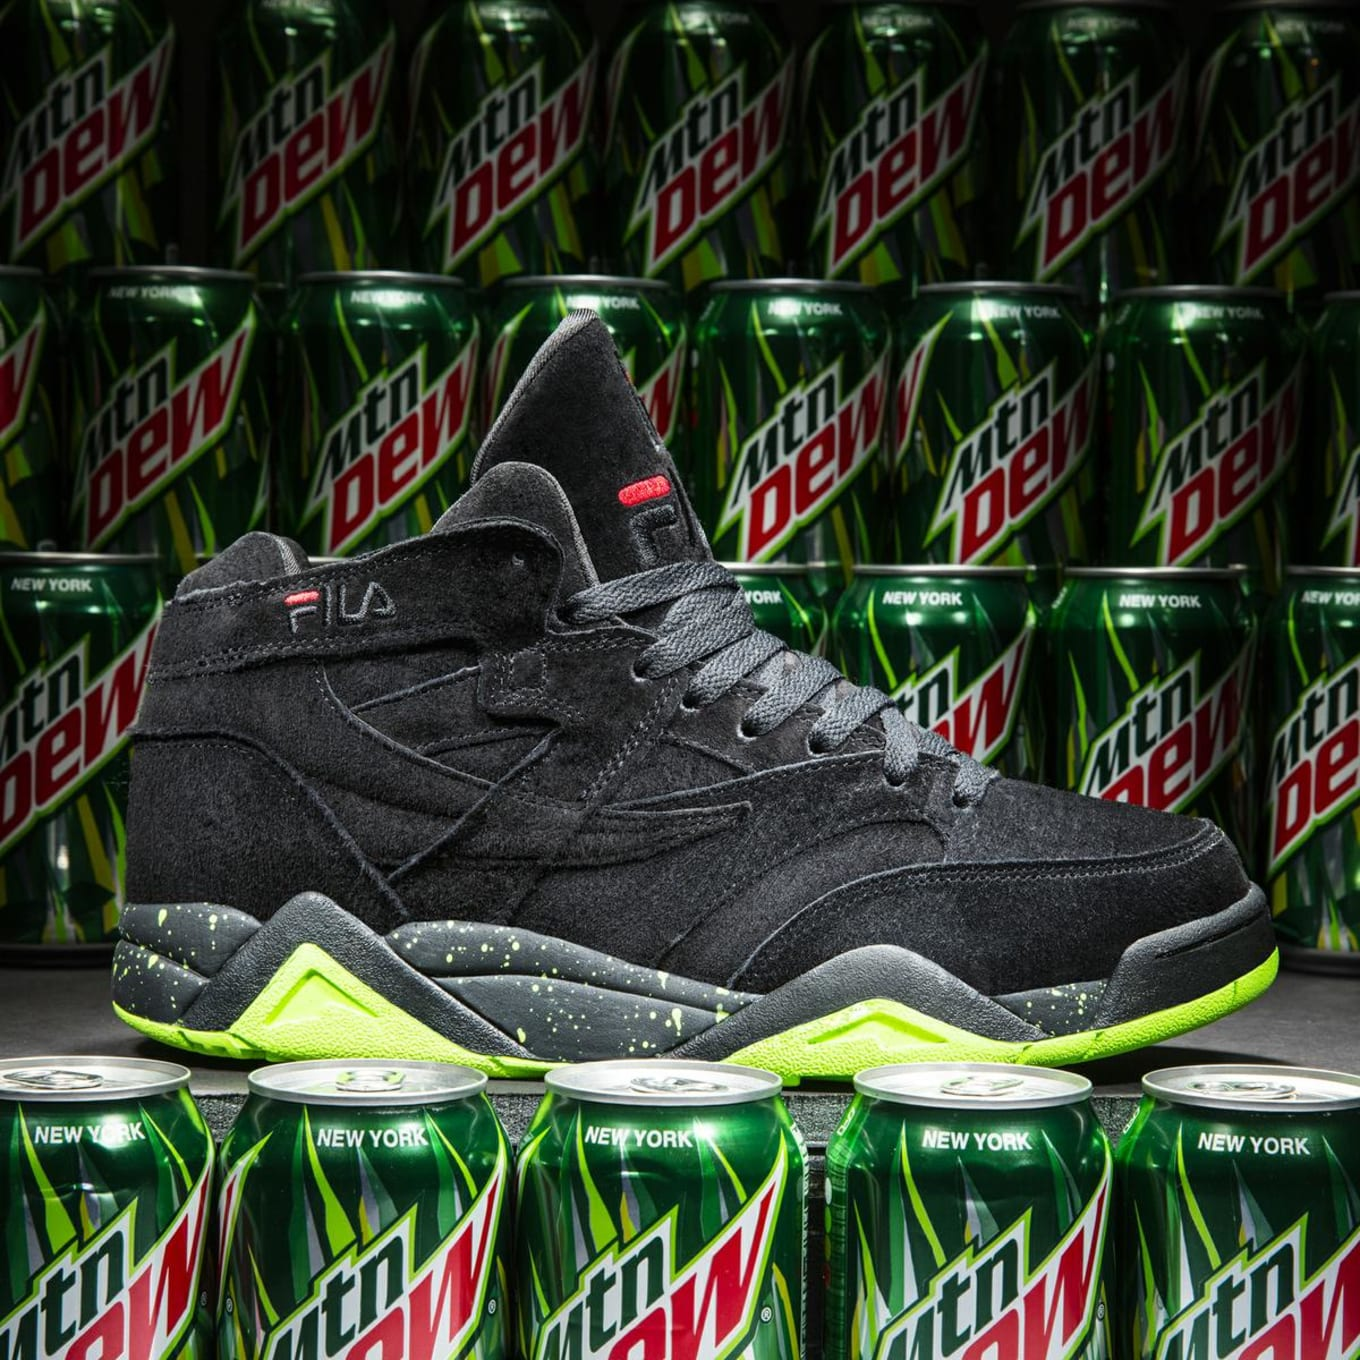 5efa956a645 FILA and Mountain Dew Pop the Top on a New Sneaker Collaboration